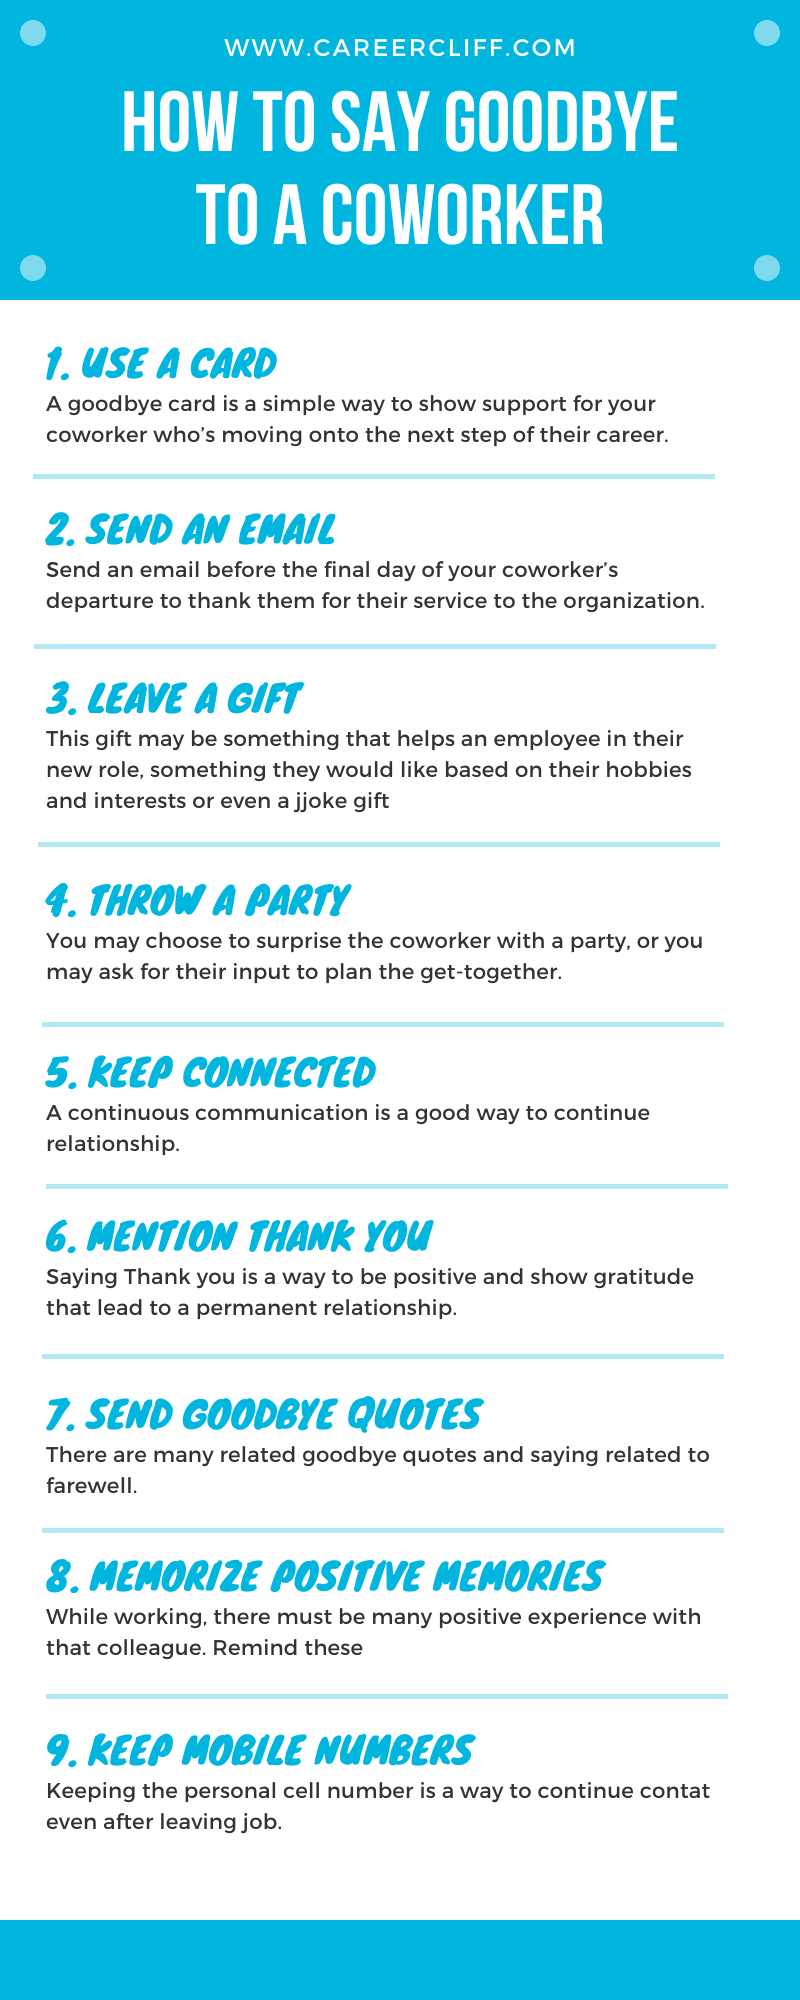 How to Say Goodbye to a Coworker